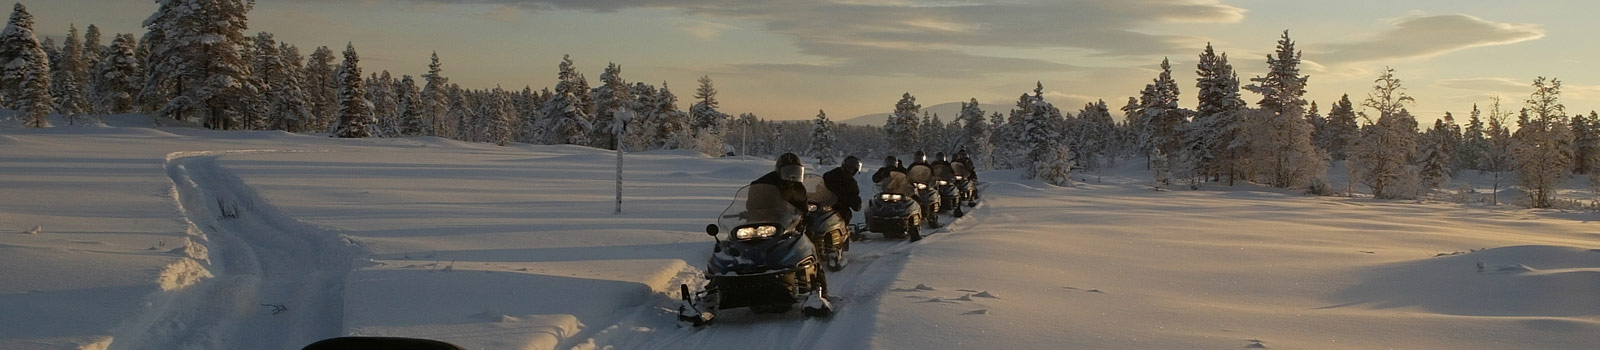 Snowmobiling on public land